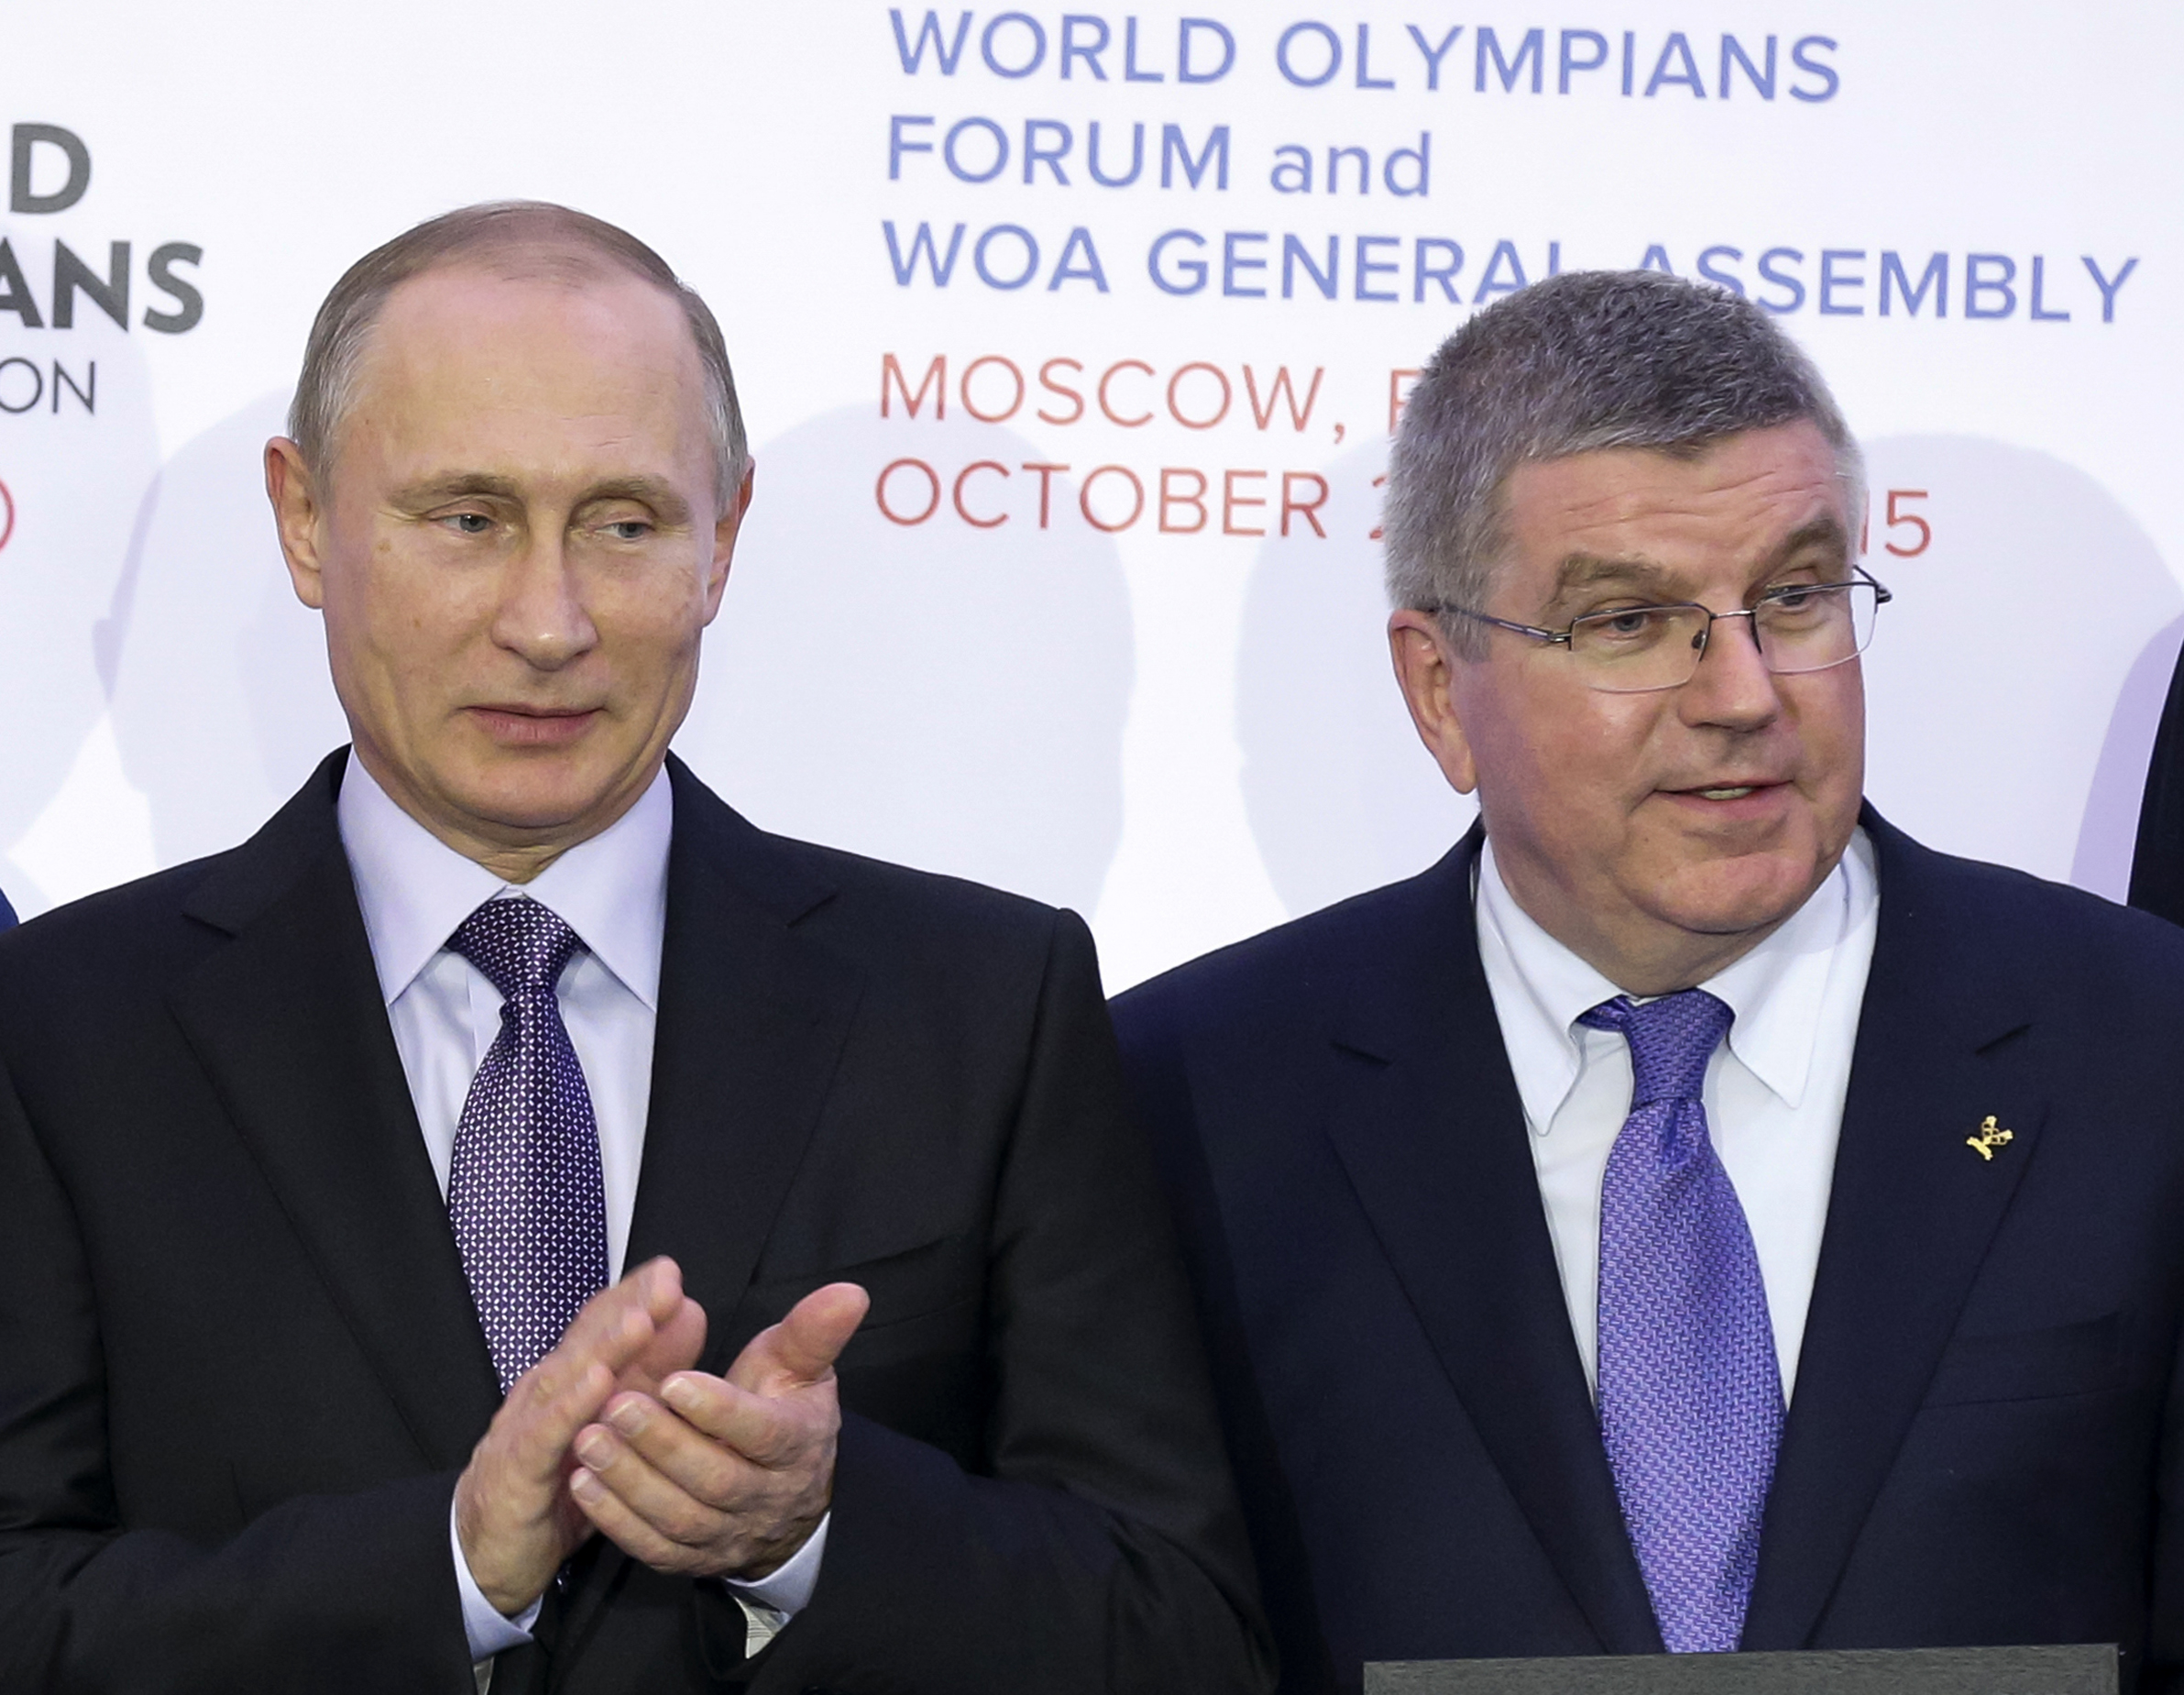 FILE- In this Wednesday, Oct. 21, 2015 file photo, Russian President Vladimir Putin, left, and International Olympic Committee (IOC) President Thomas Bach attend the World Olympians Forum in Moscow, Russia. Olympic leaders on Tuesday, June 21, 2016 have c